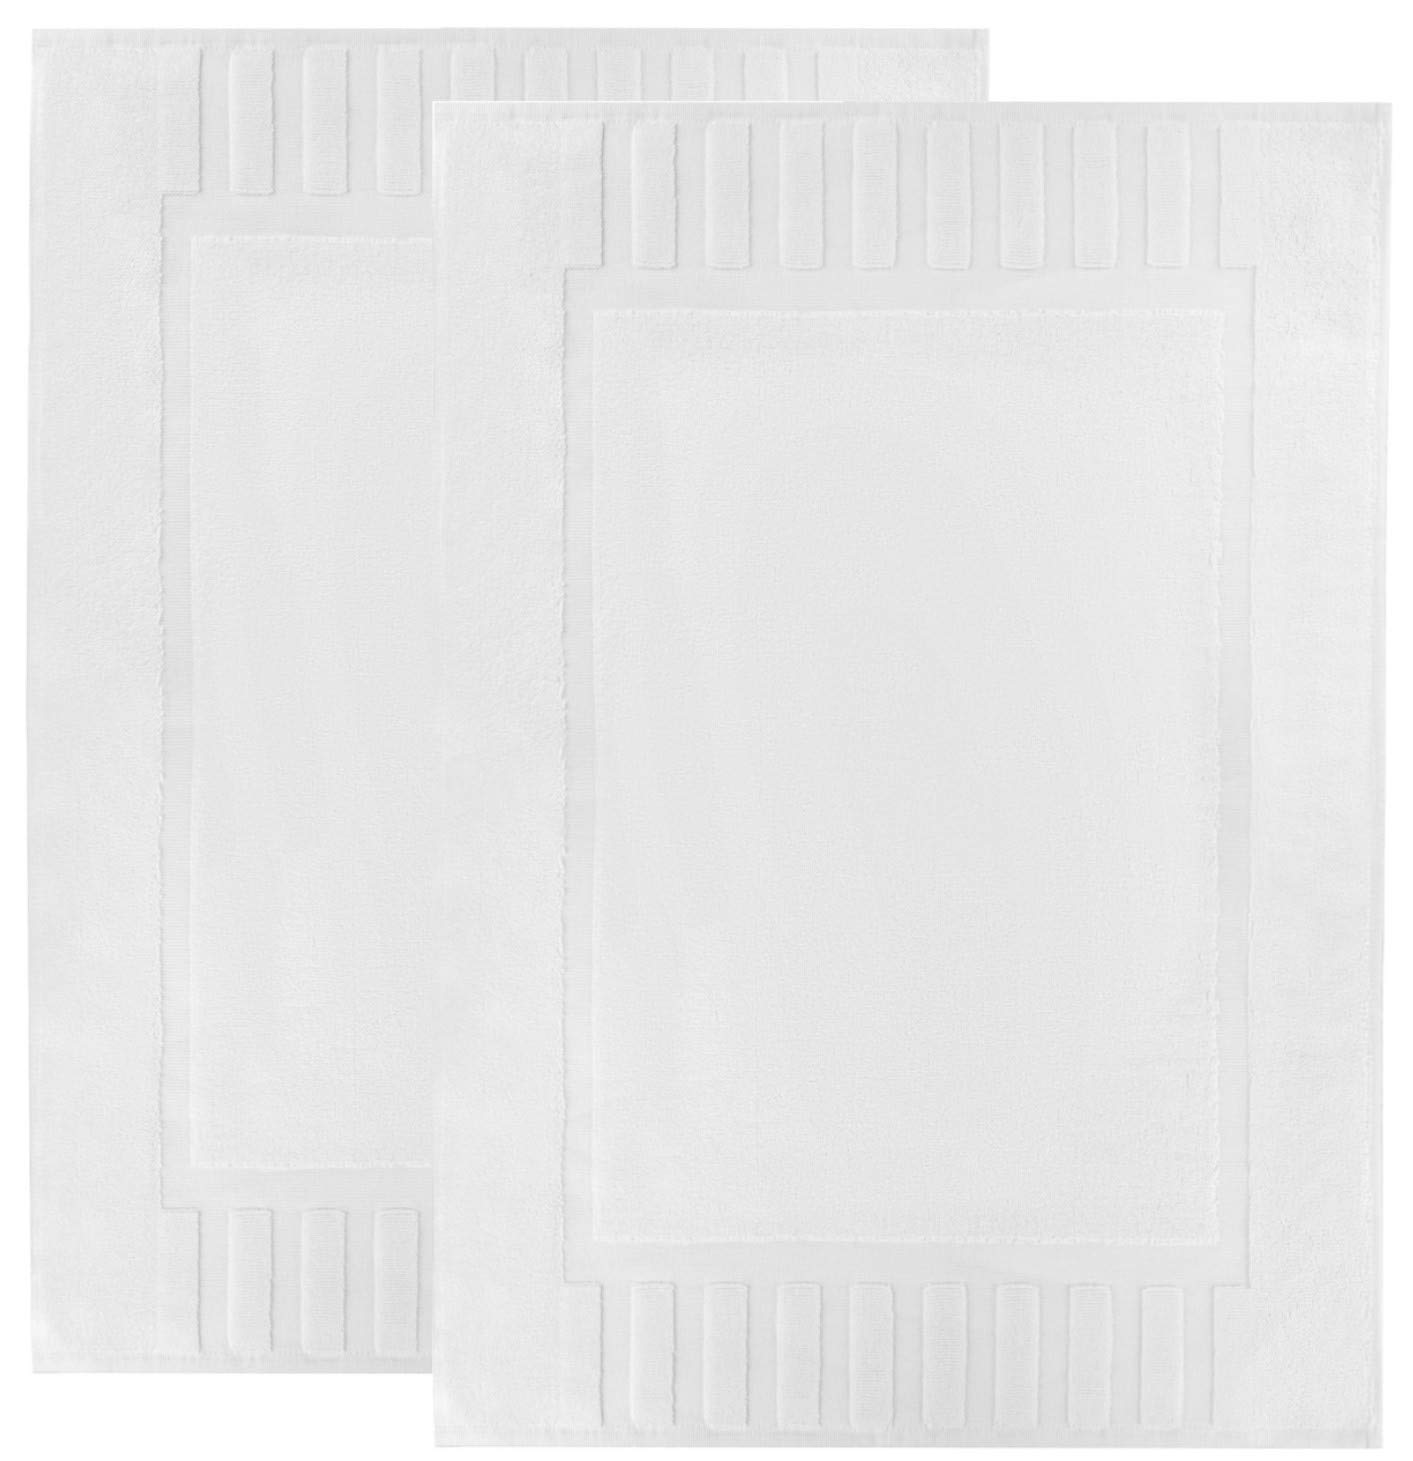 Luxury Bath Mat Floor Towel Set - Absorbent Cotton Hotel Spa Shower/Bathtub Mats [Not a Bathroom Rug] 22''x34'' | White | 2 Pack by White Classic